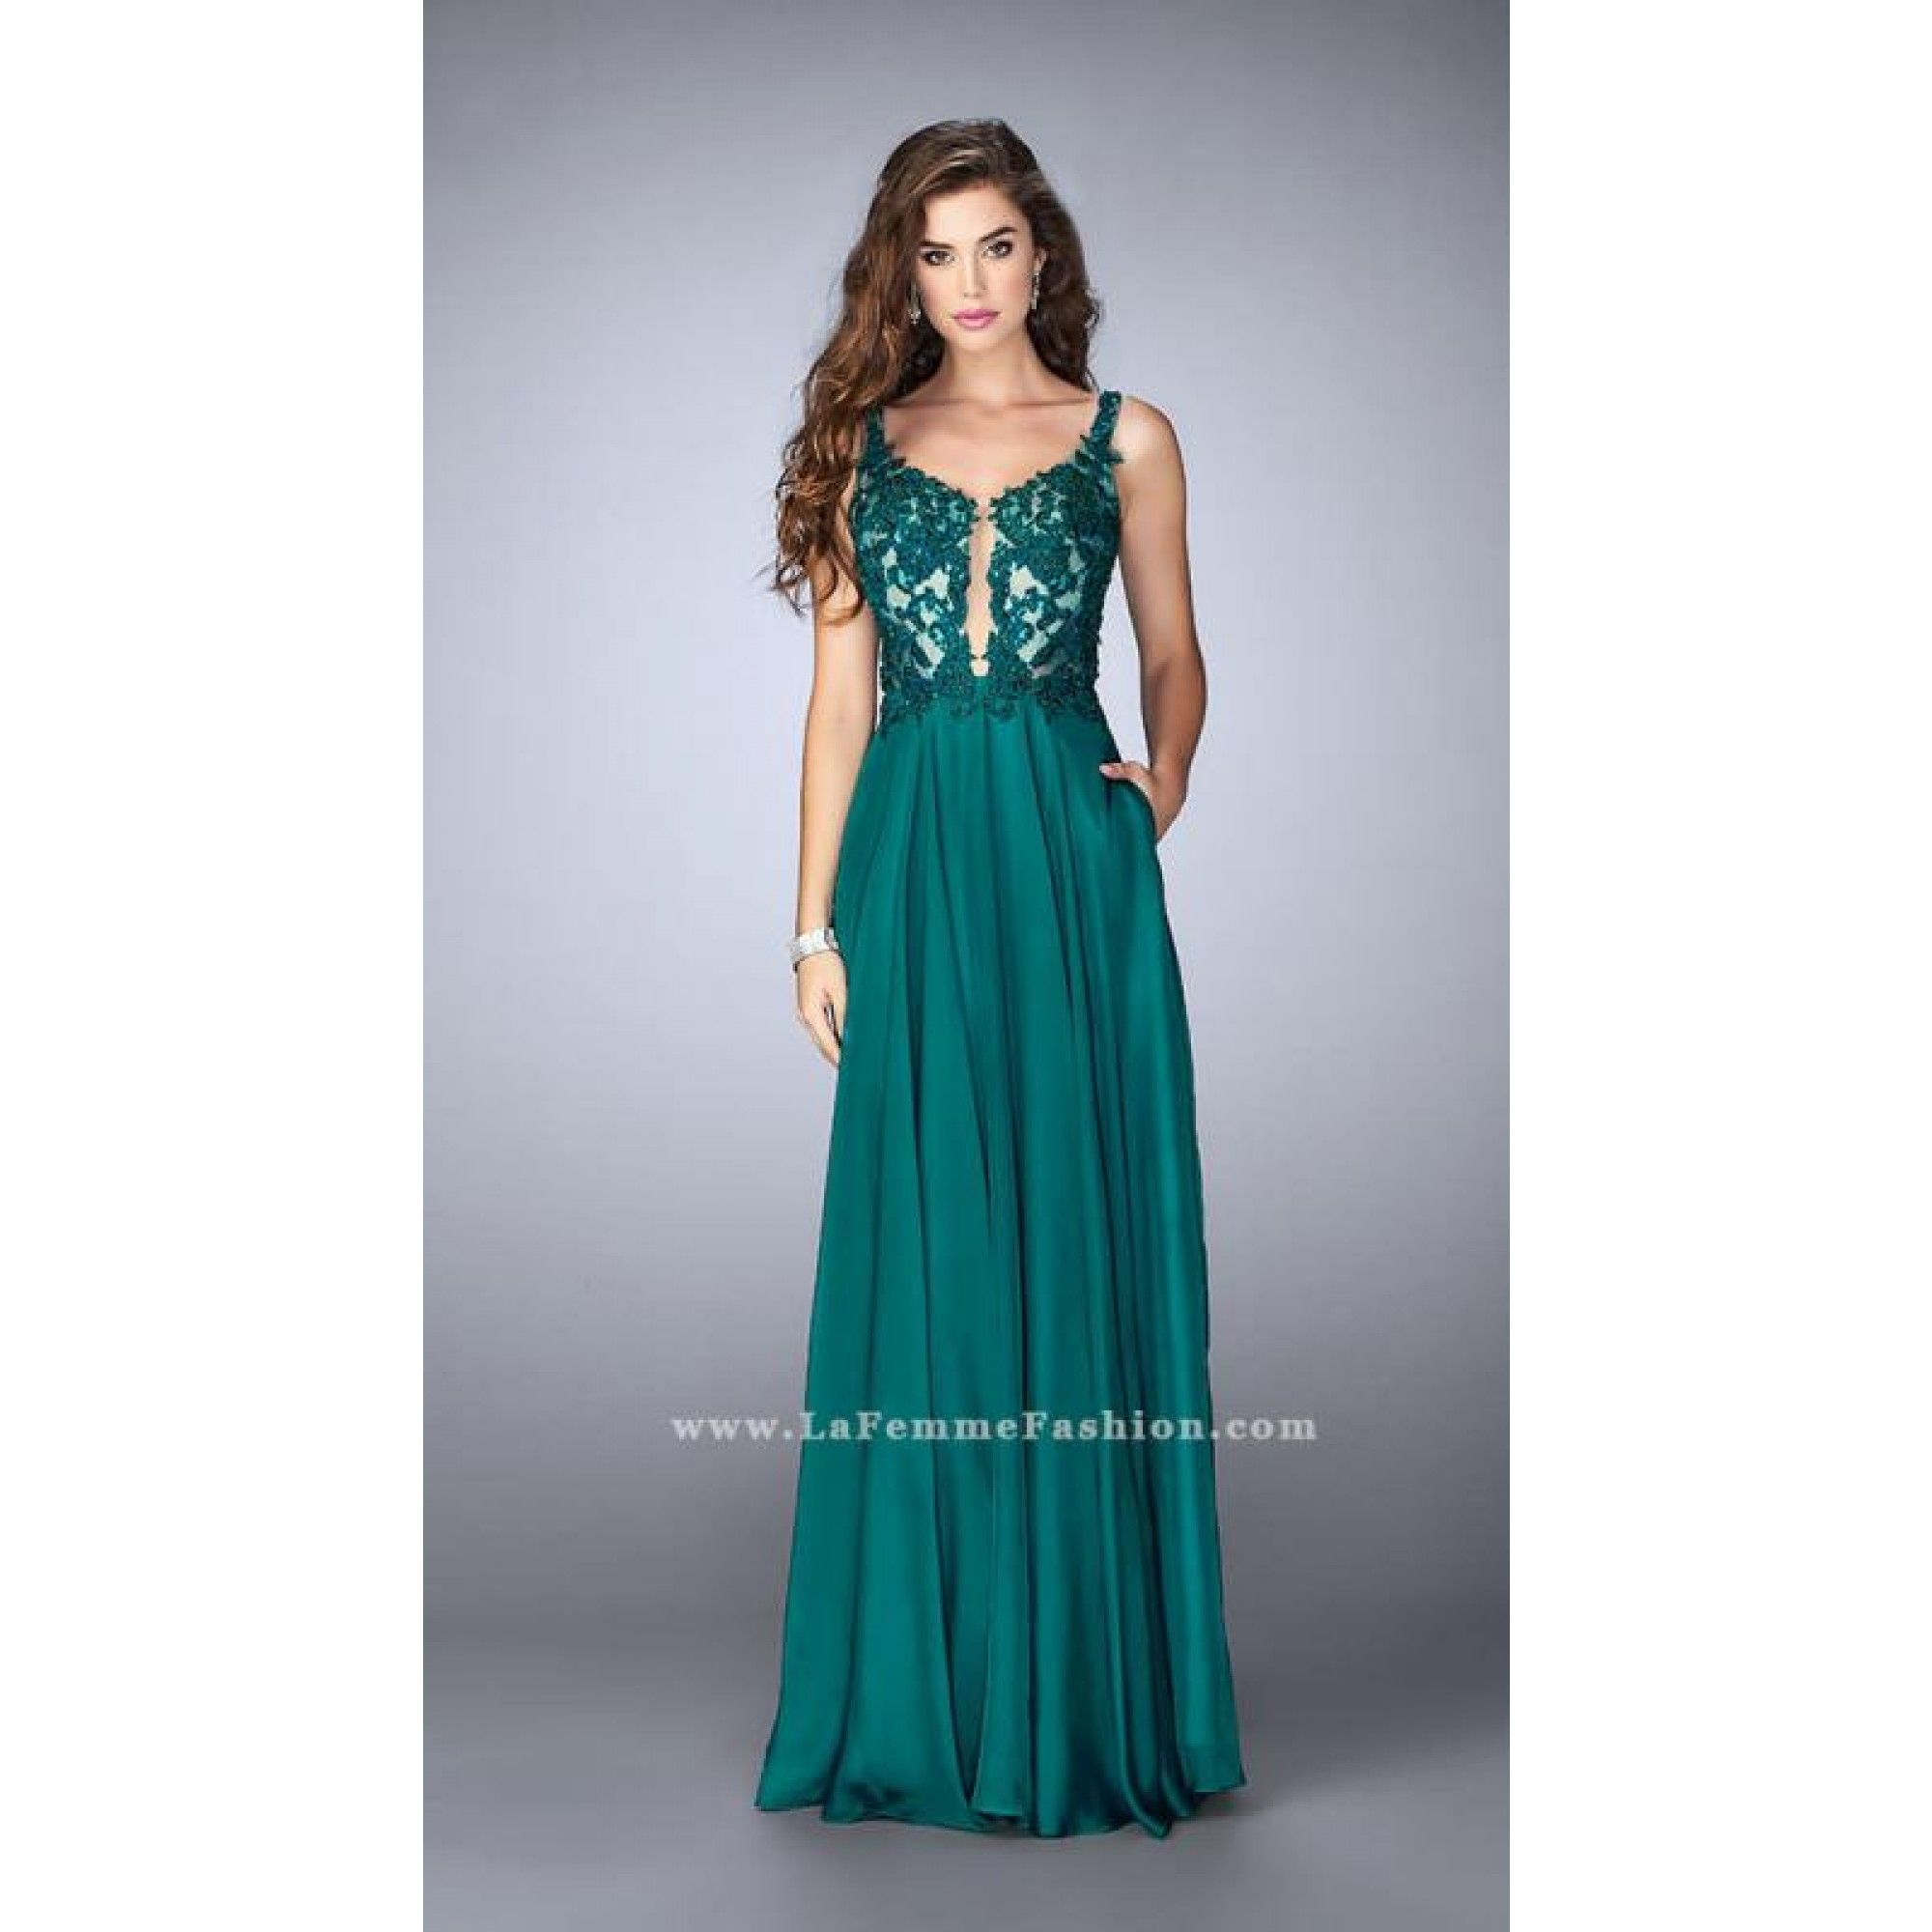 Colorful Prom Dresses Orland Park Il Inspiration - All Wedding ...